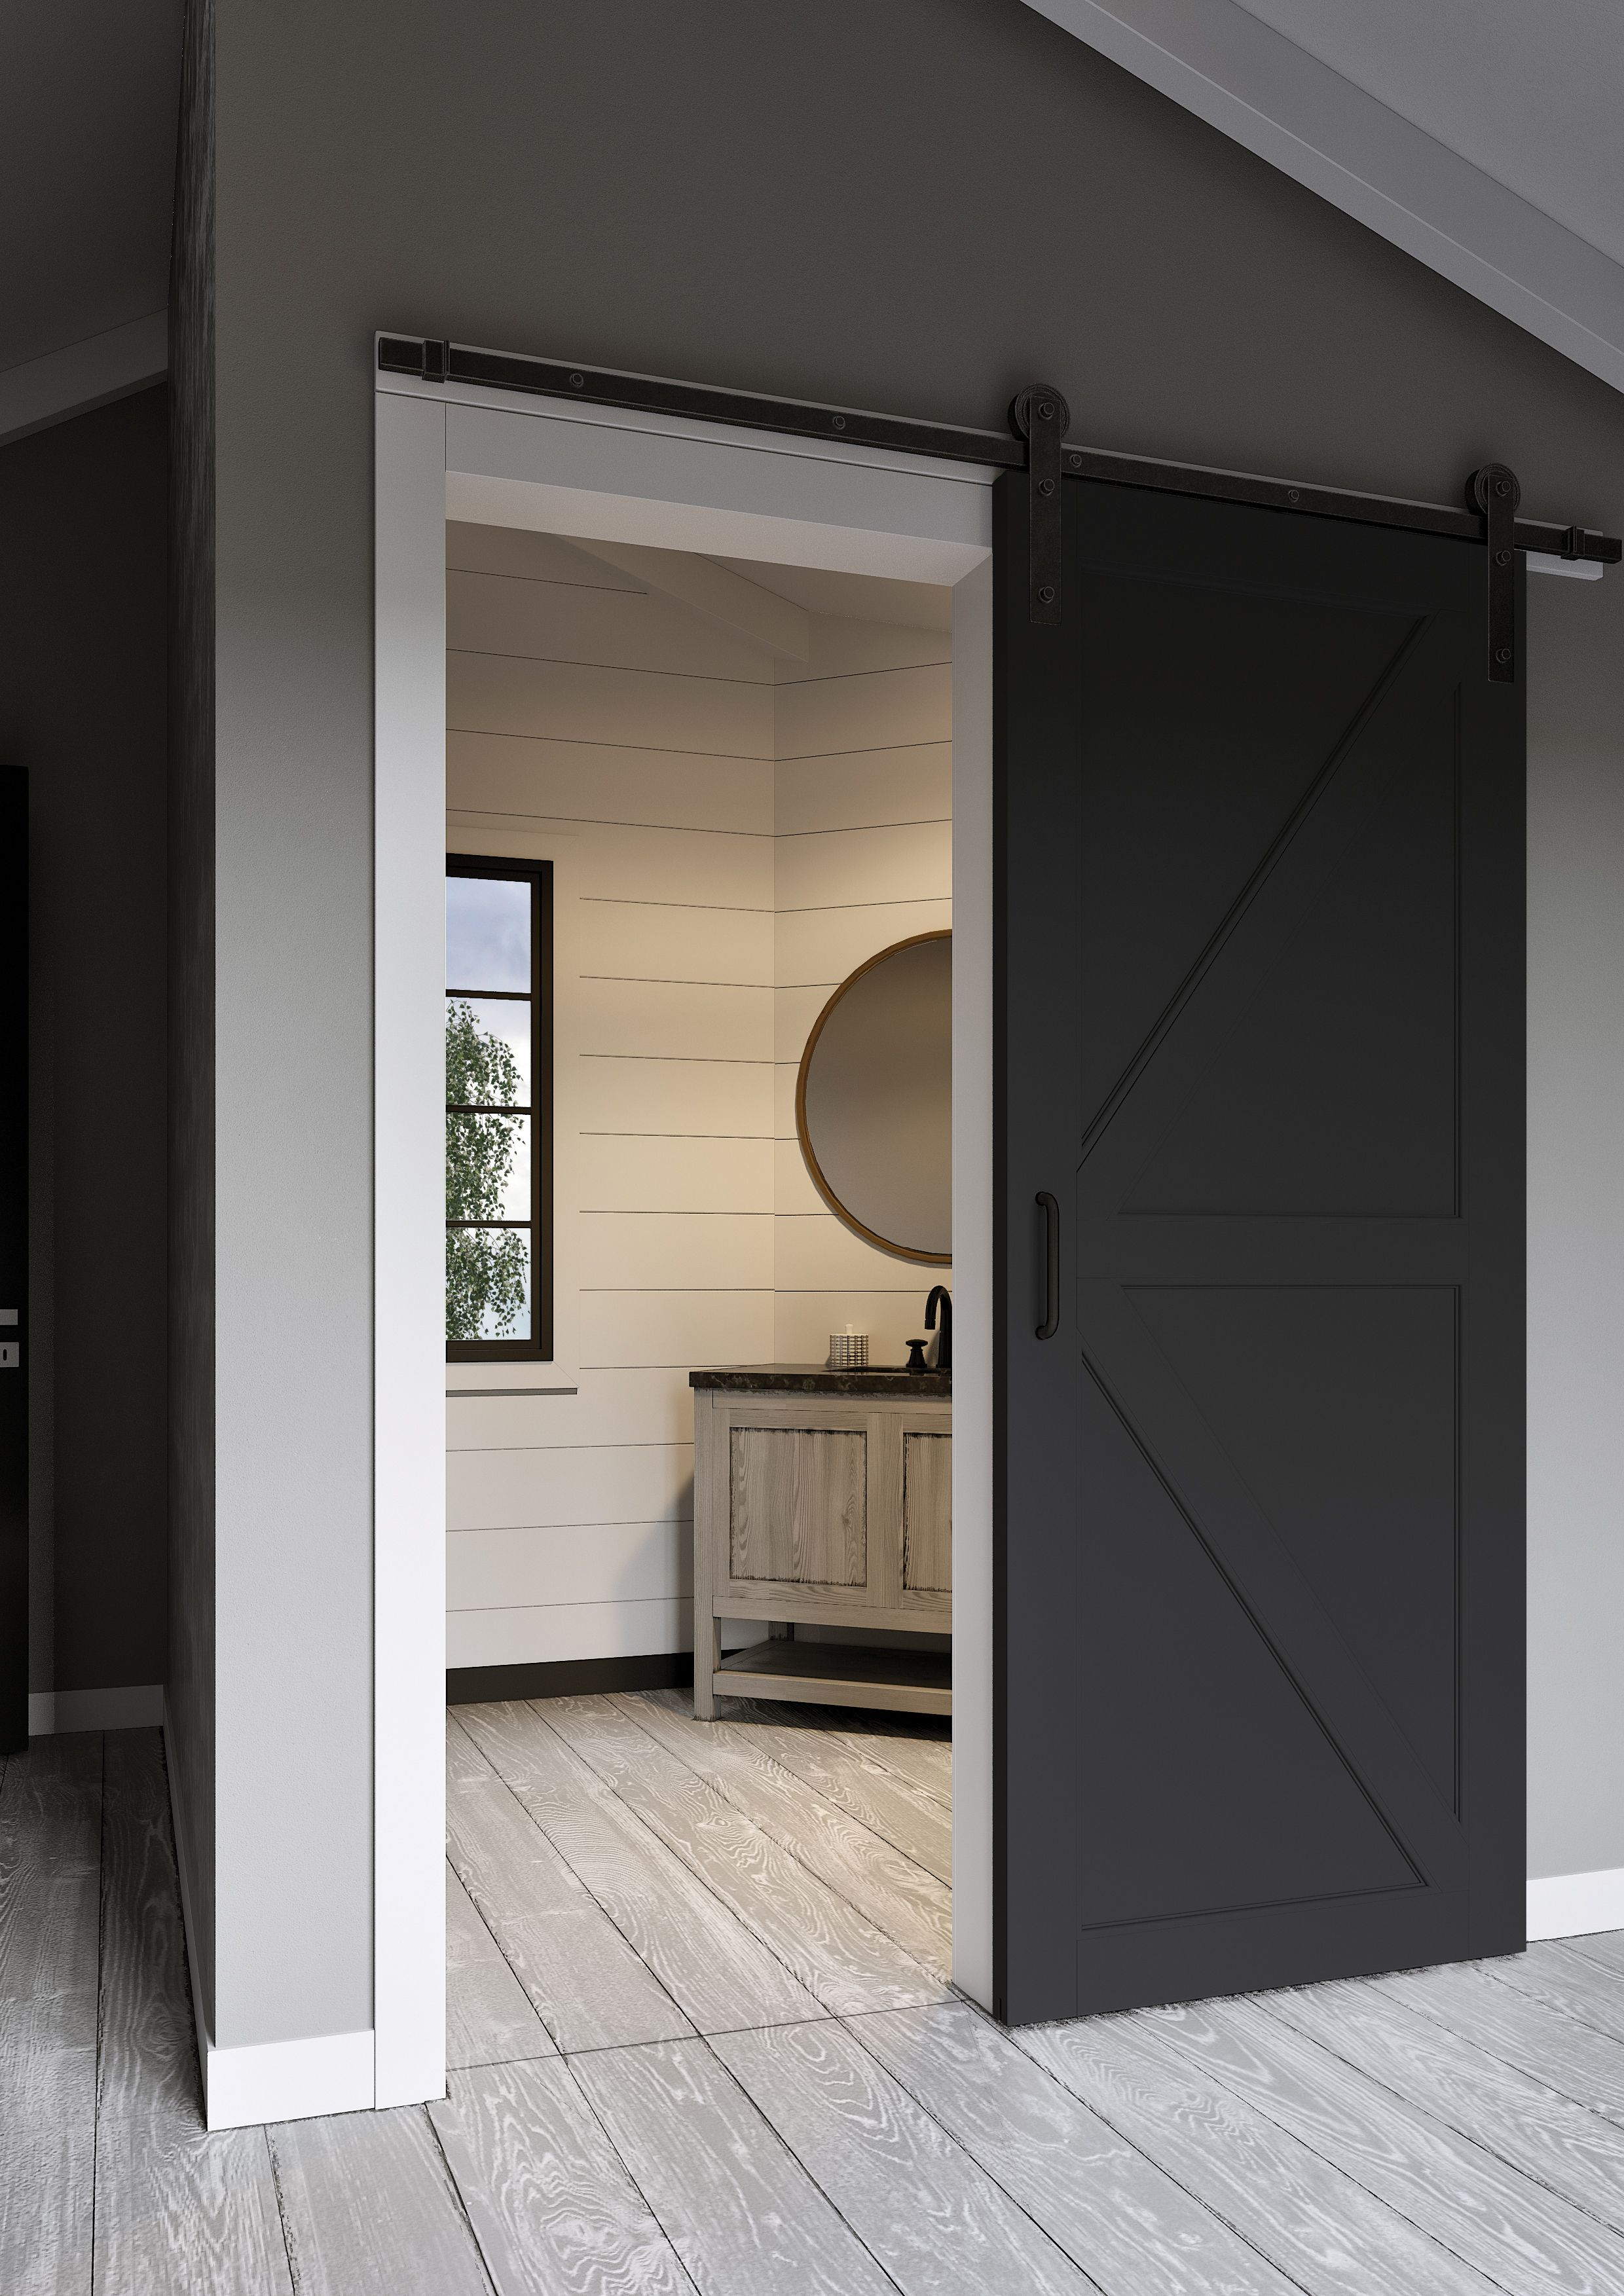 Masonite Jeff Lewis K Bar Knight Barn Door Barn Door Designs Sliding Door Design Modern Barn Door